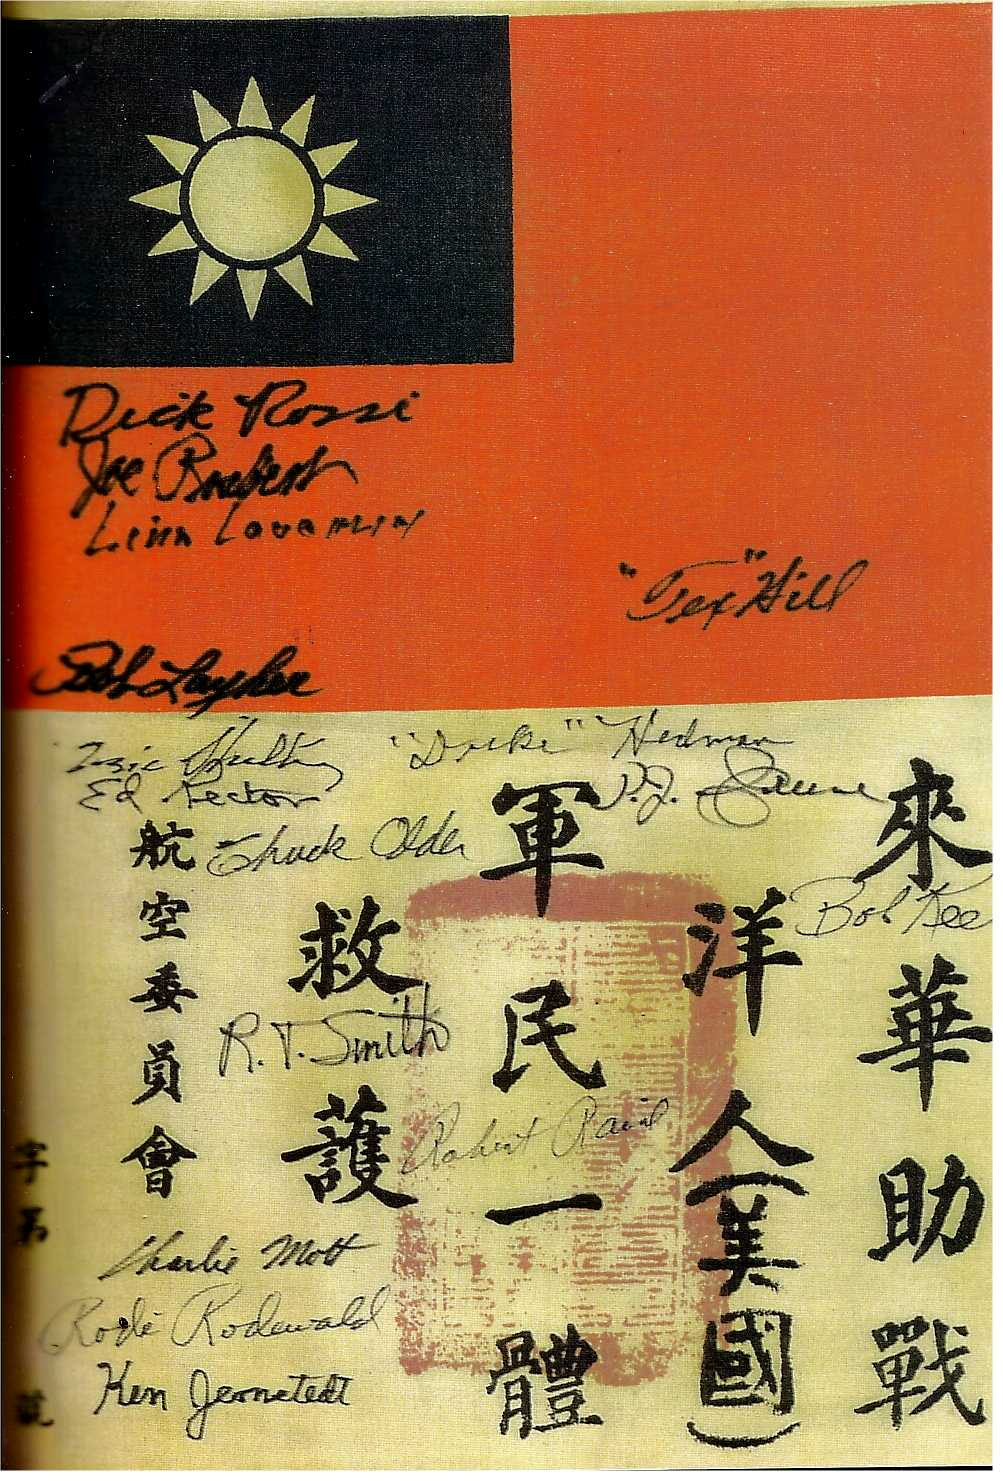 Image of a Japanese Chit